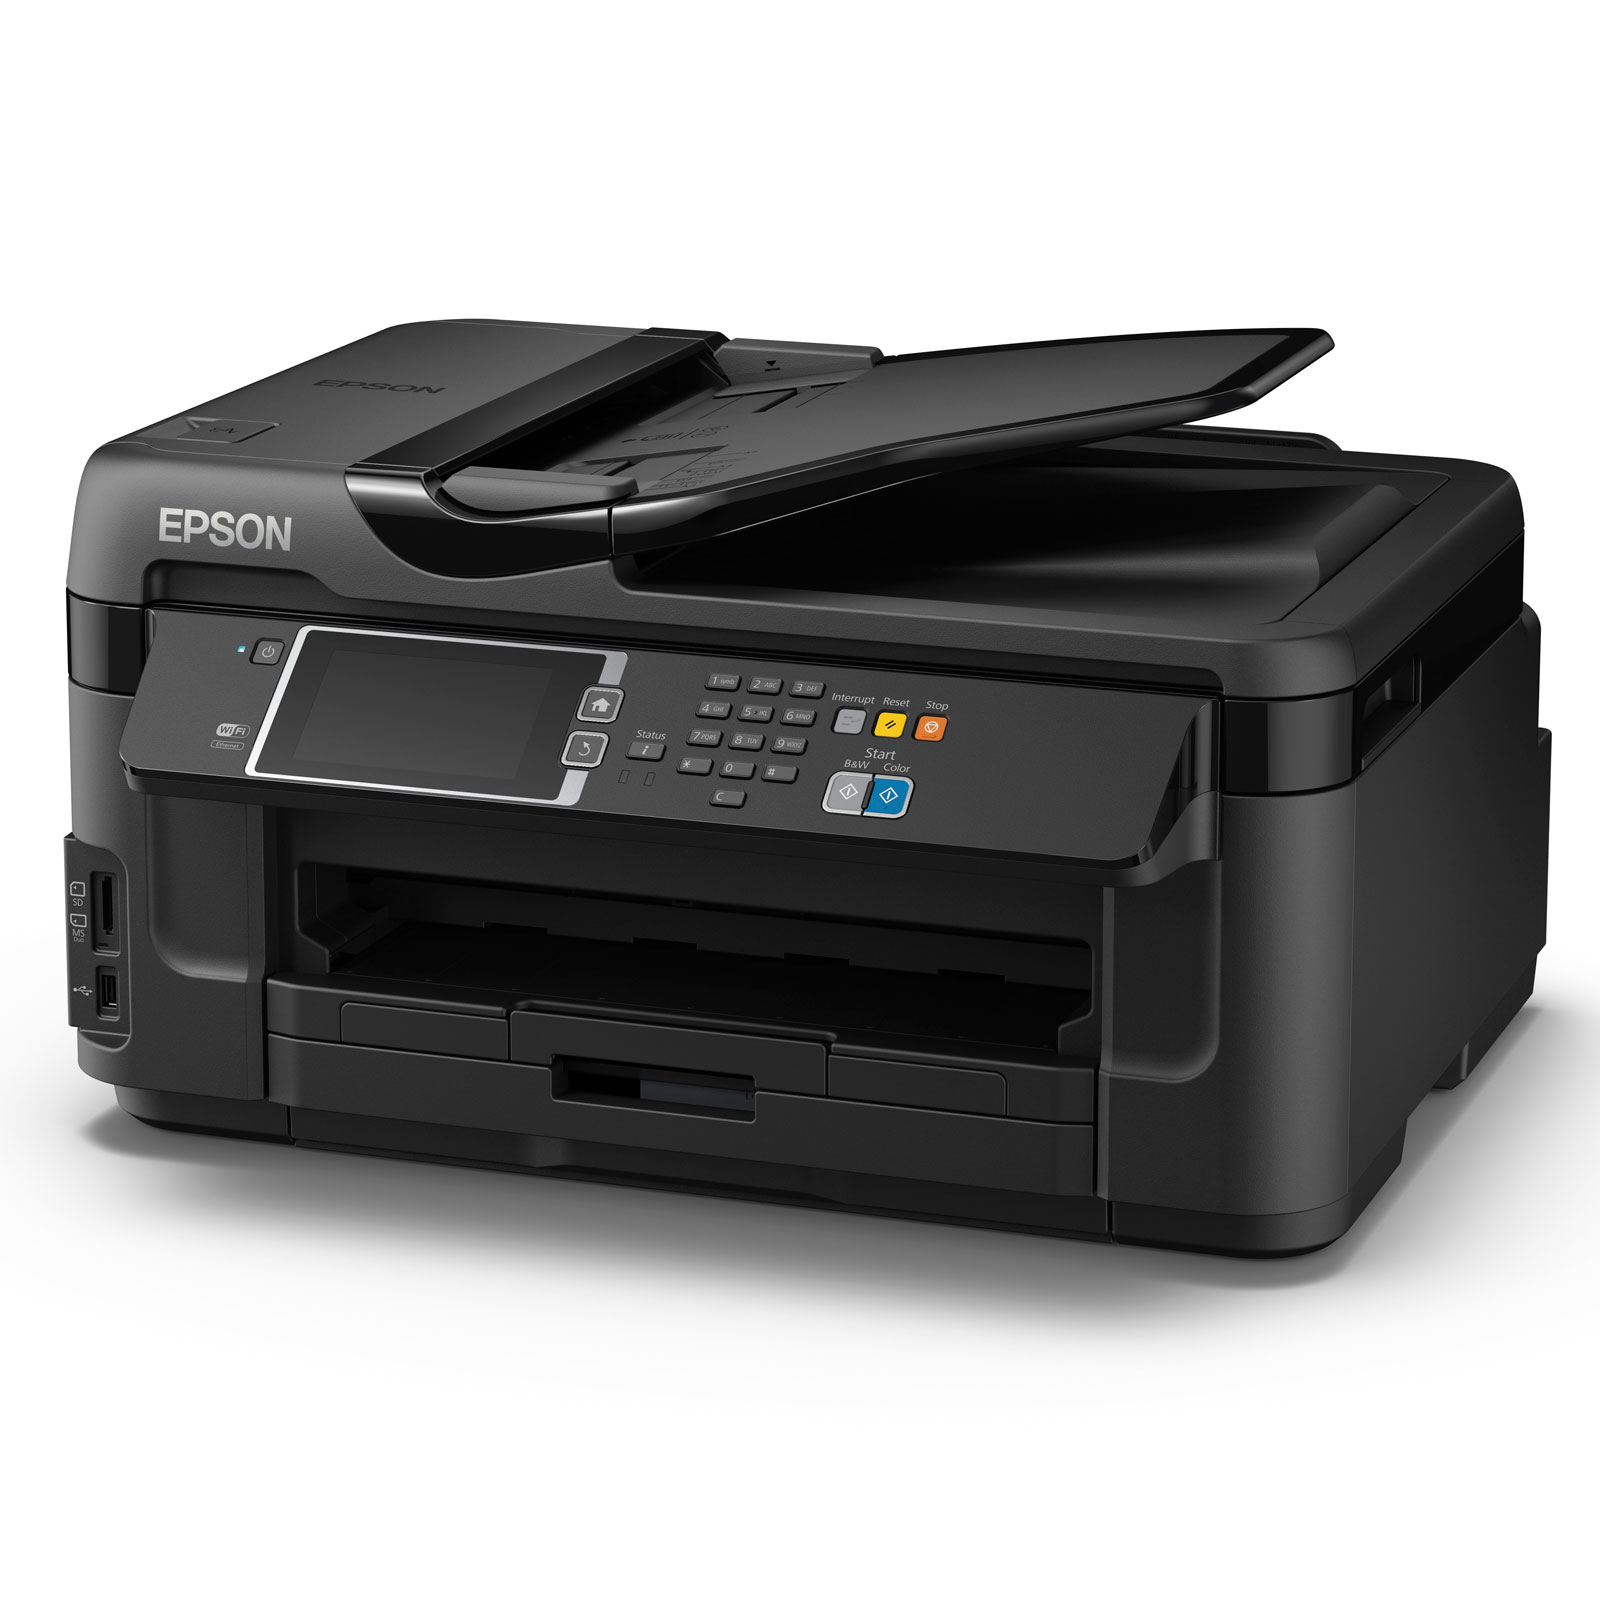 epson workforce wf 7610dwf imprimante multifonctions jet d 39 encre couleur a3 fax comparer. Black Bedroom Furniture Sets. Home Design Ideas